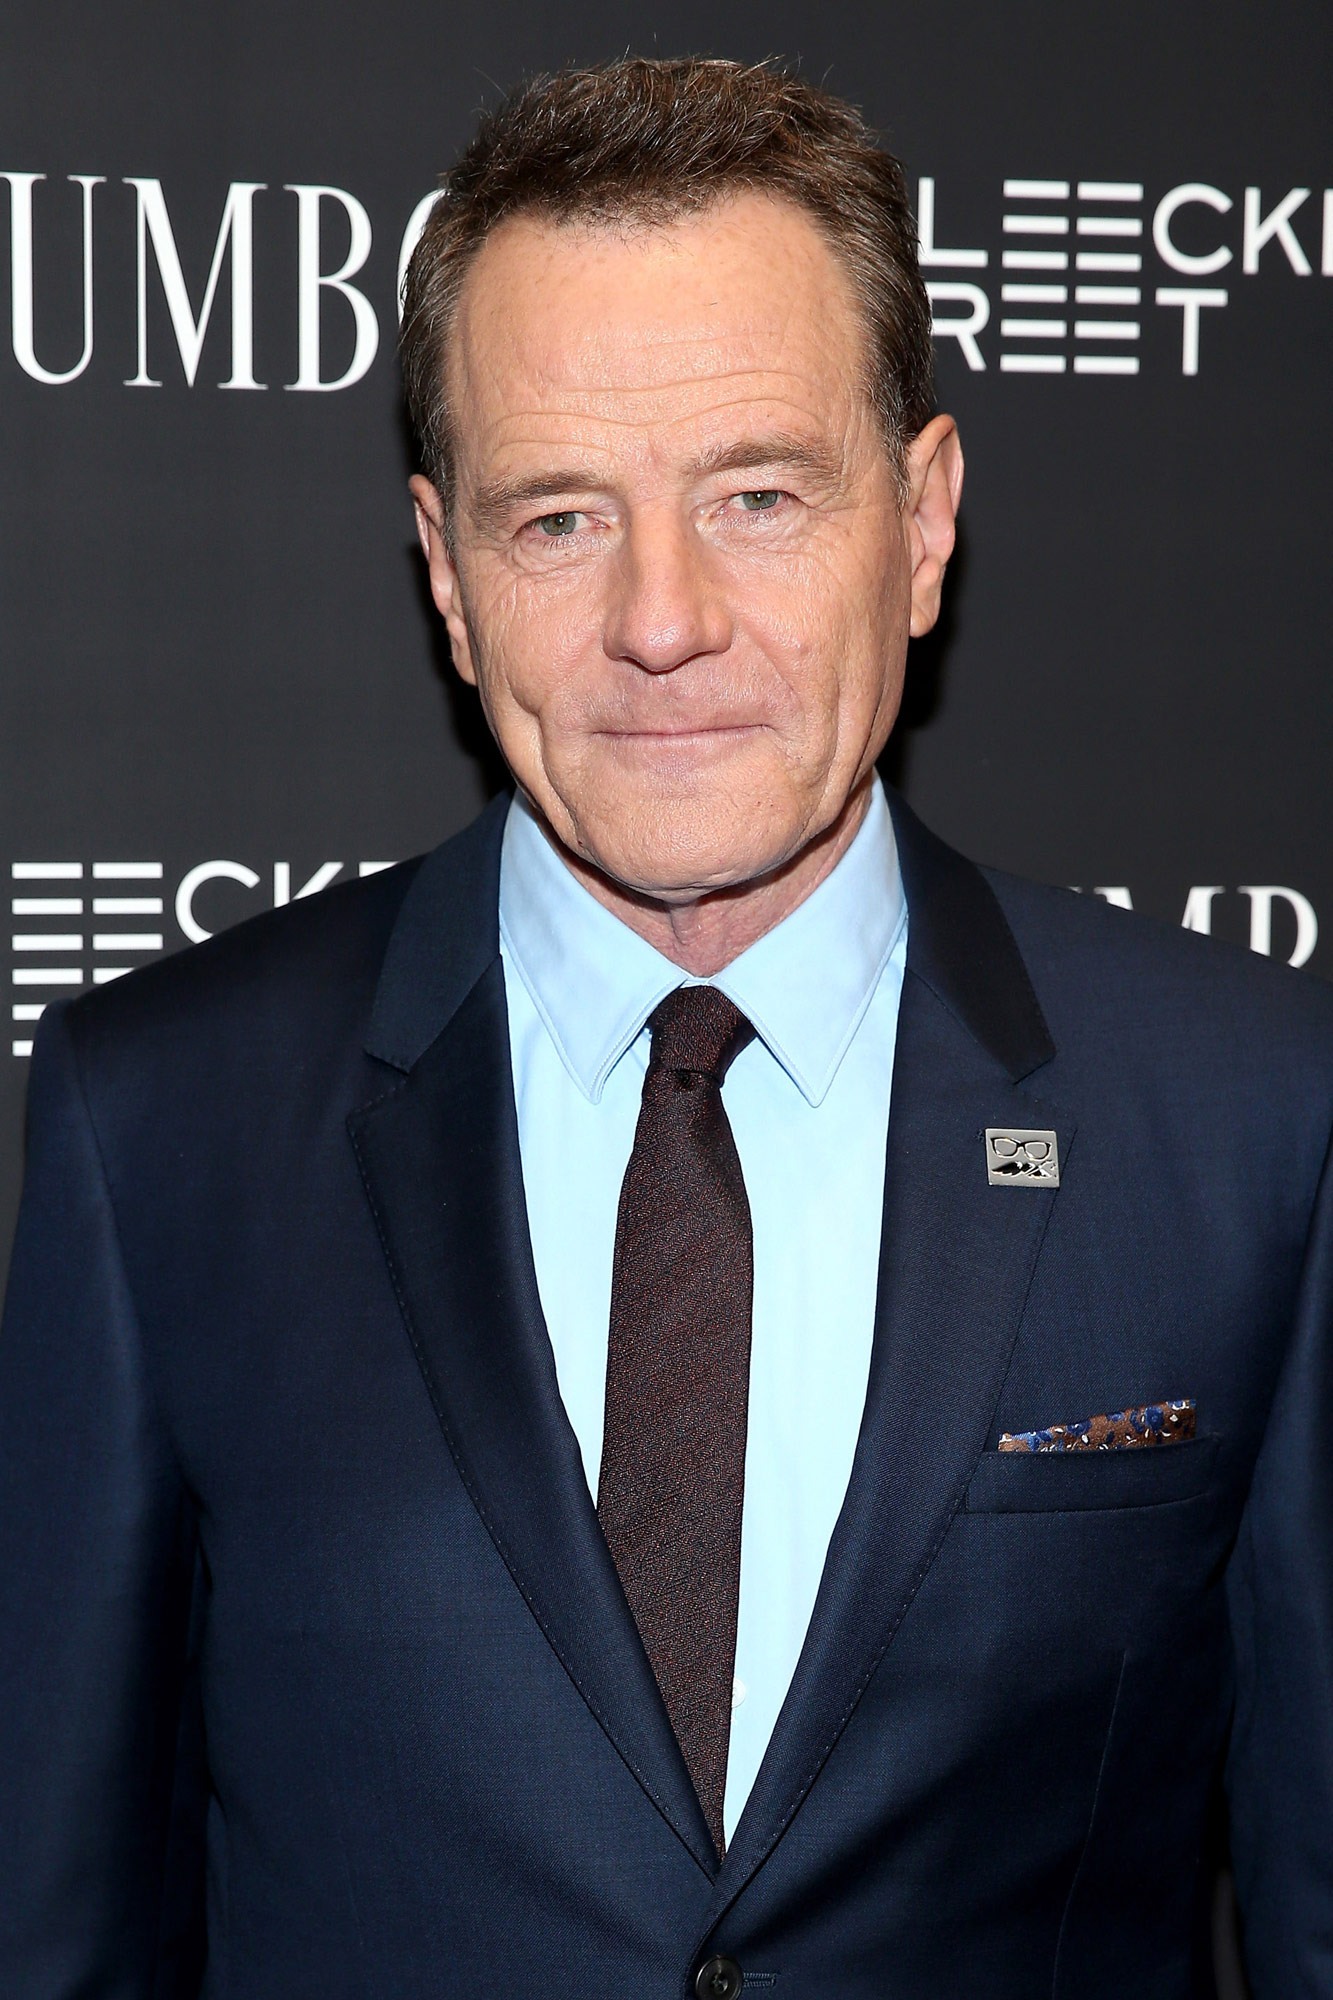 """Bryan Cranston attends the """"Trumbo"""" New York premiere at MoMA Titus Two on November 3, 2015 in New York City."""